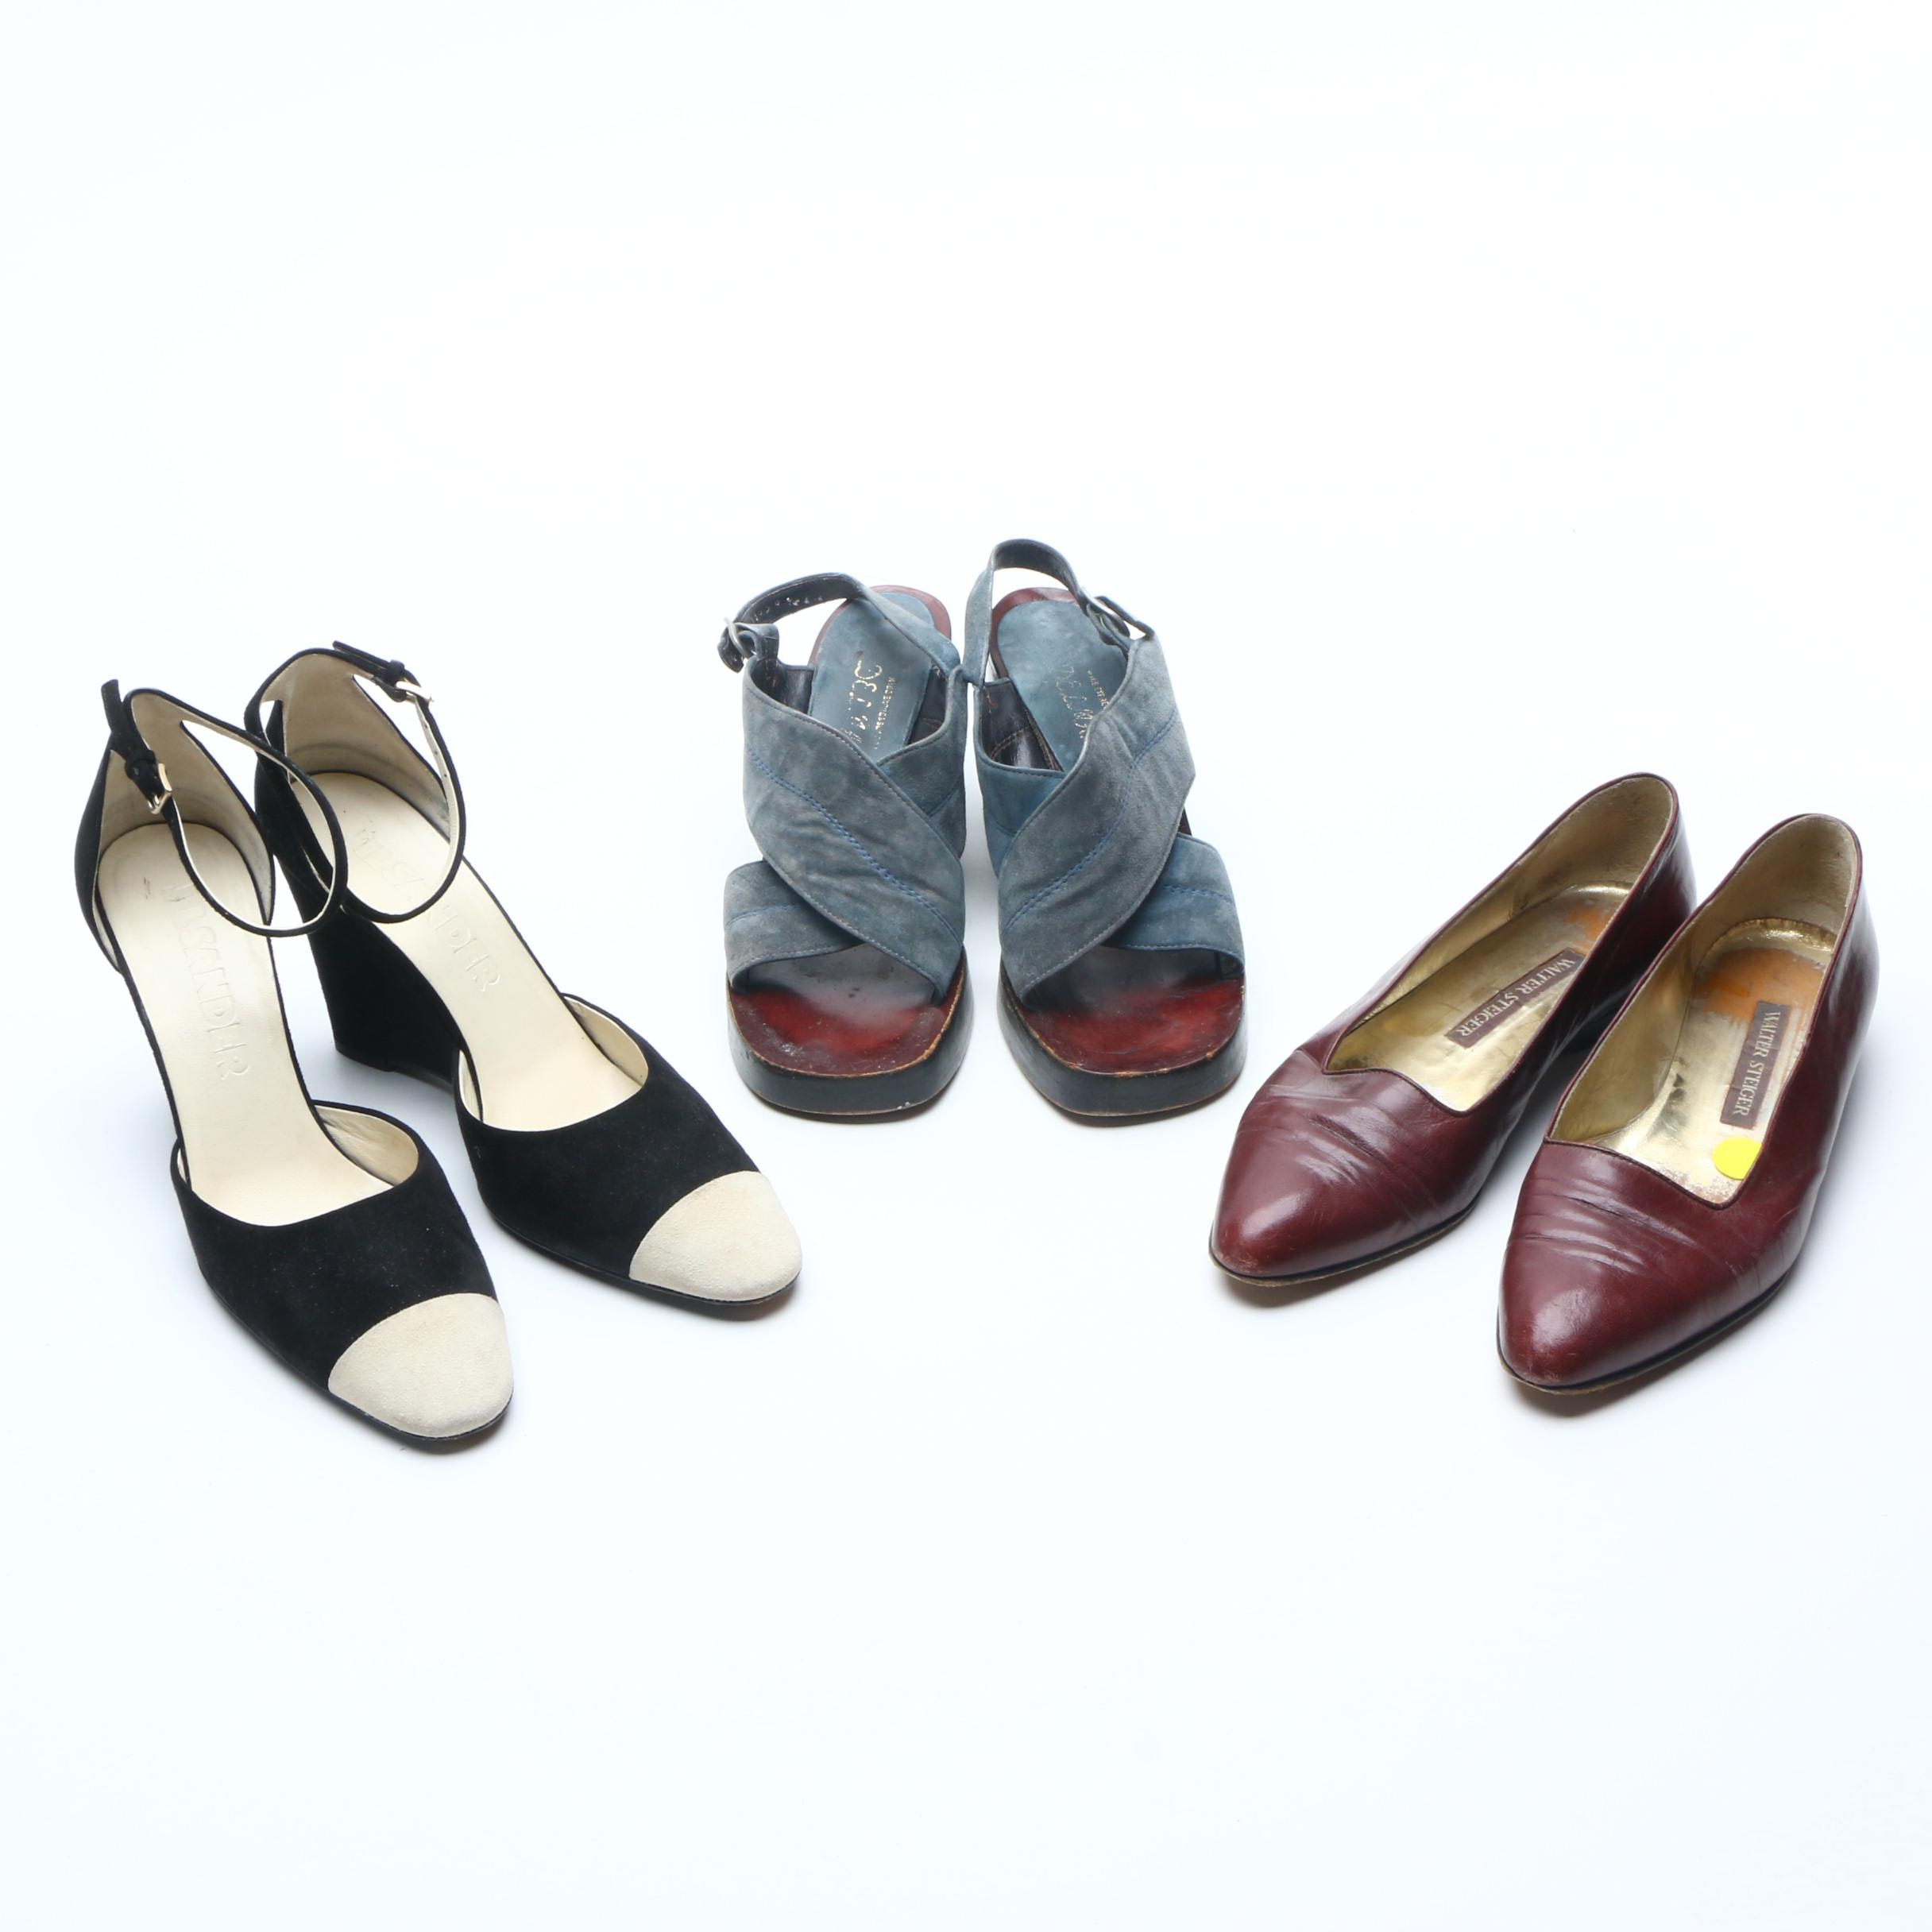 Women's Wedges, Sandals and Flats Including Walter Steiger